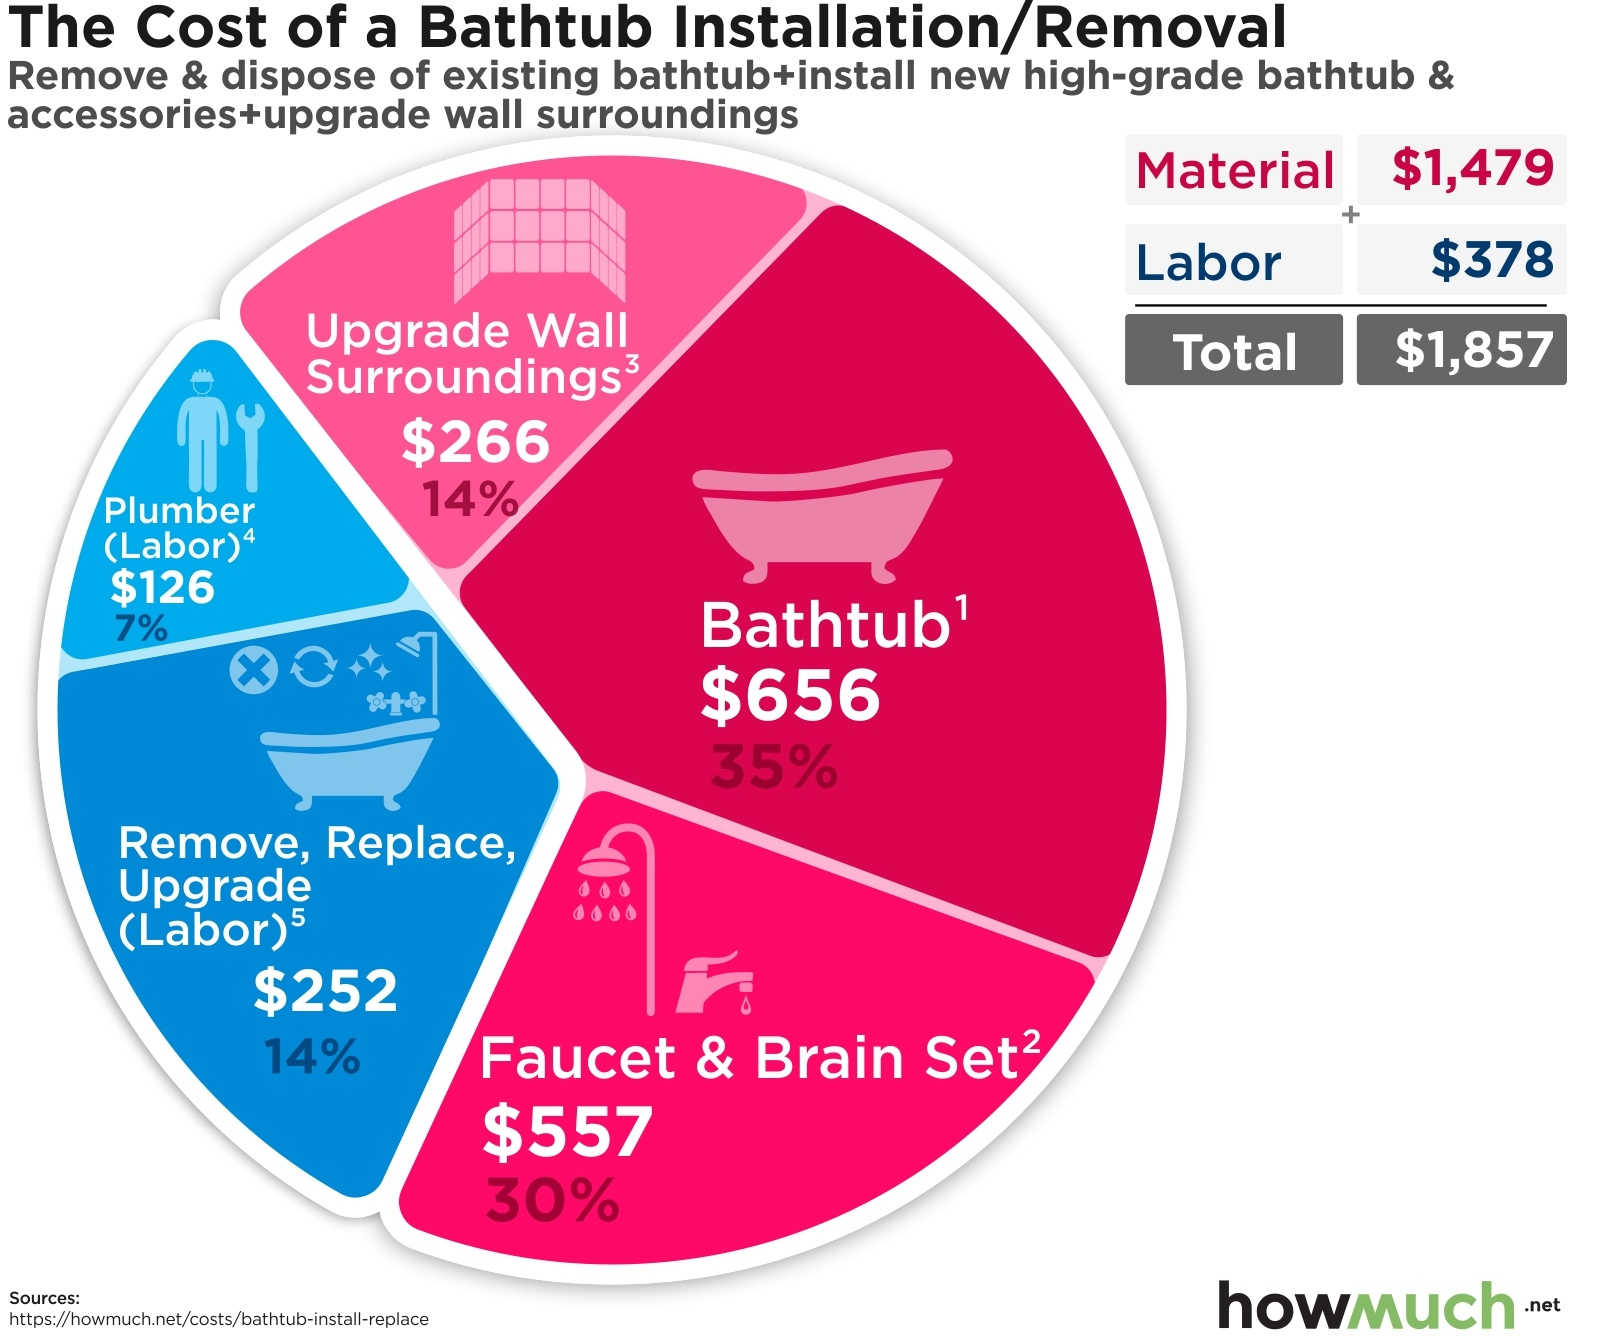 How much does it cost to install or replace a bathtub?